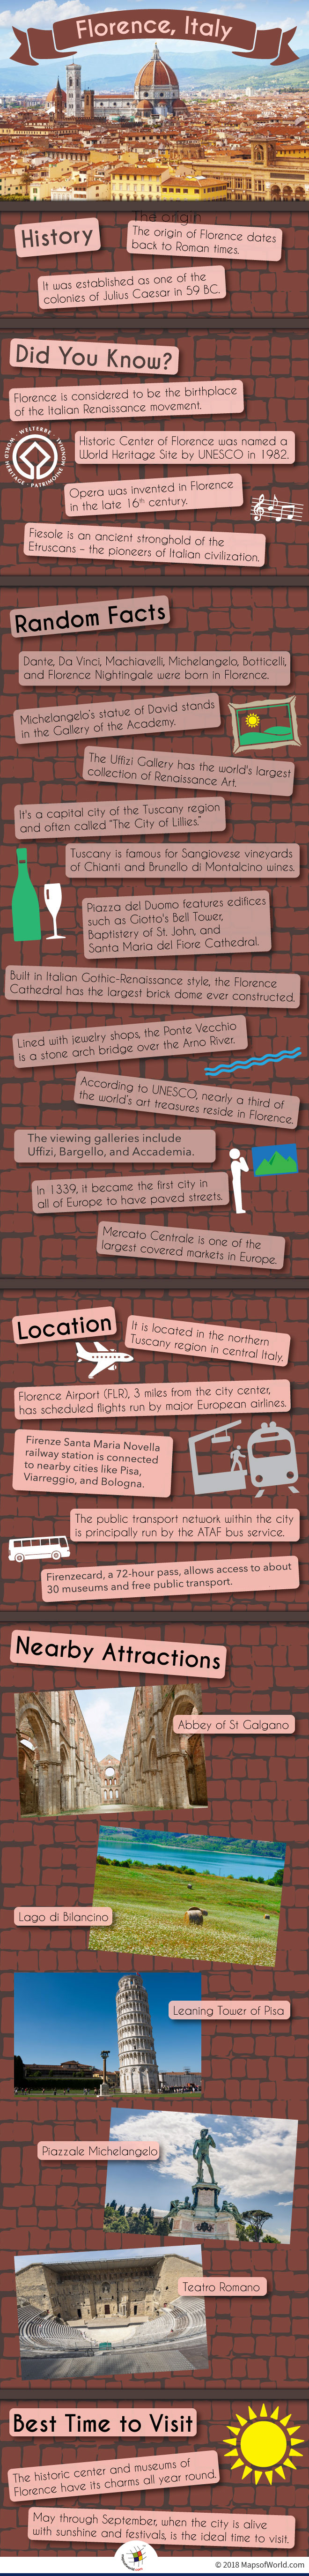 Infographic Depiction Quick Facts about Florence